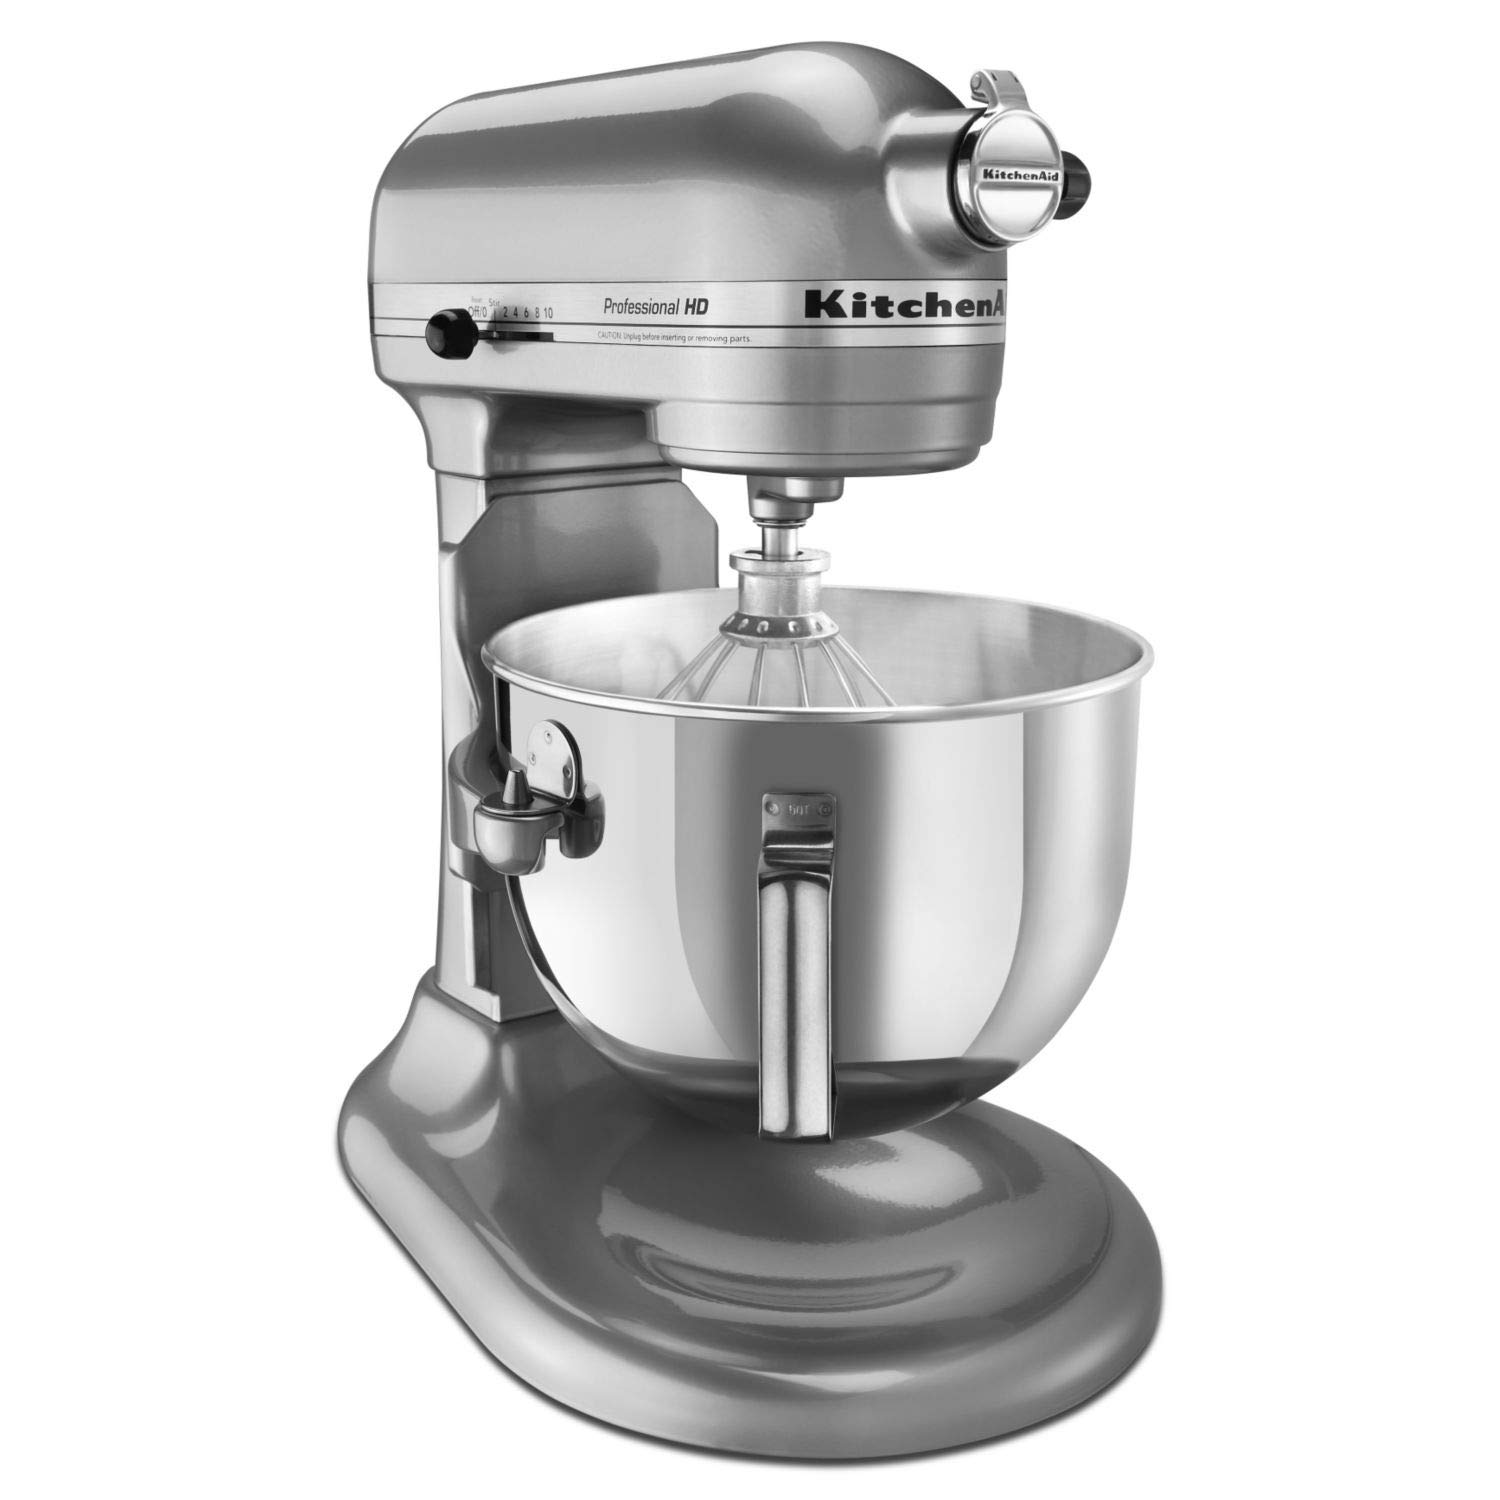 Professional Heavy-Duty Stand Mixer (CHROME)